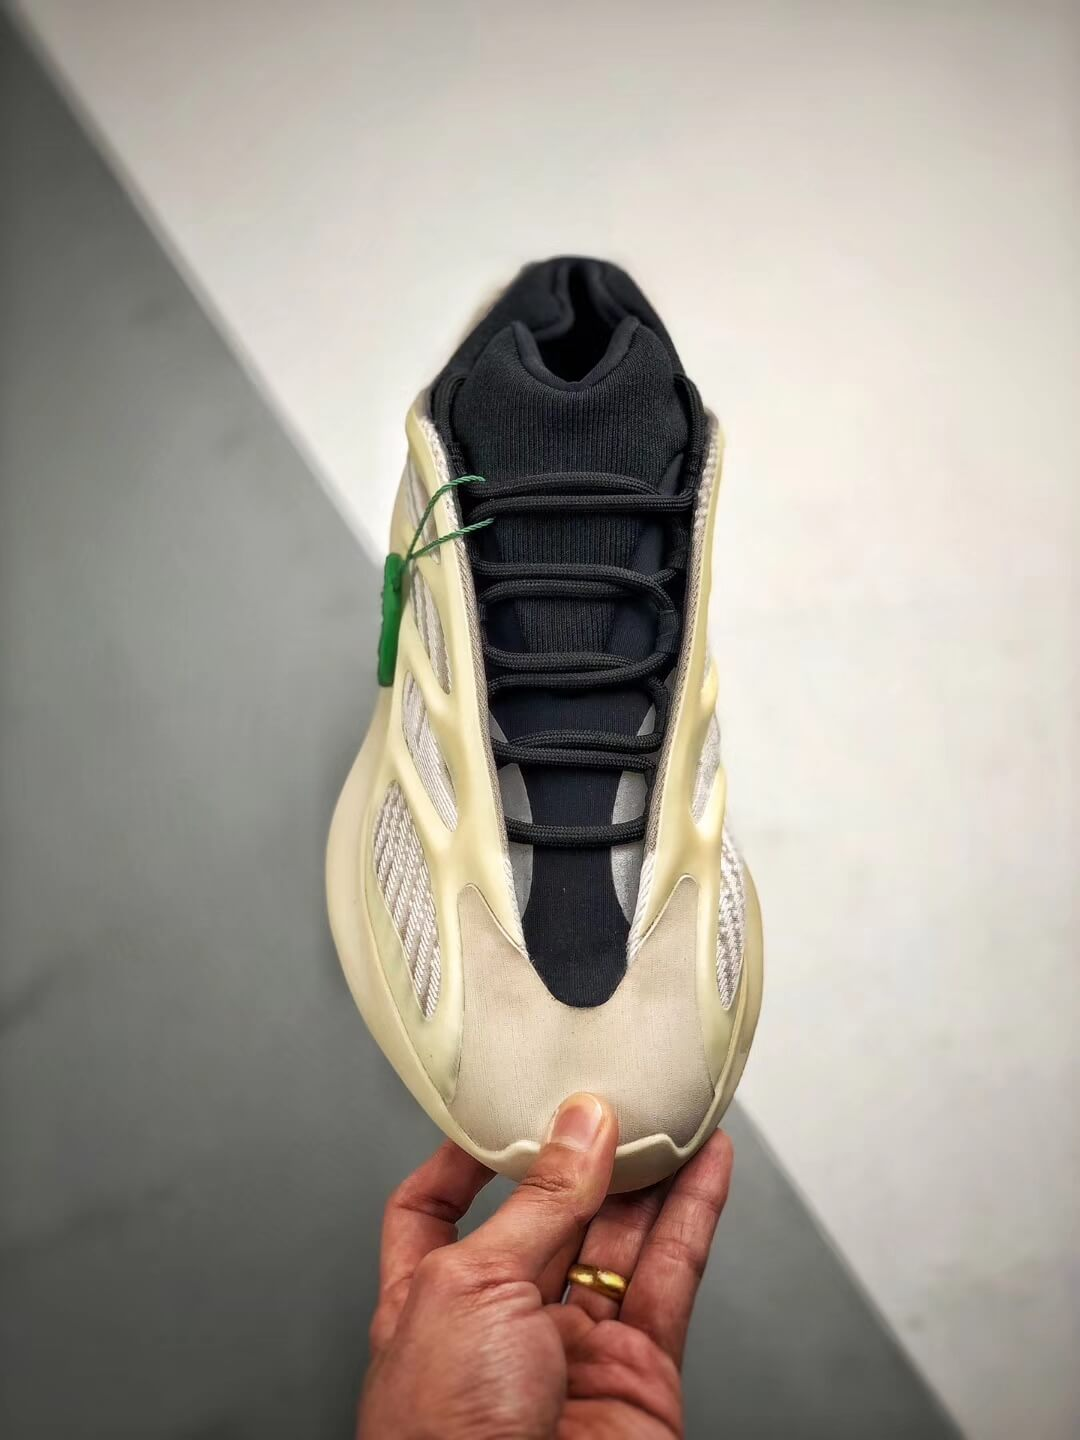 The Adidas Yeezy 700 V3 Azael Reflective Sneaker White Mesh Open Work Upper EVA Outer Sole Top RepSneakers 03